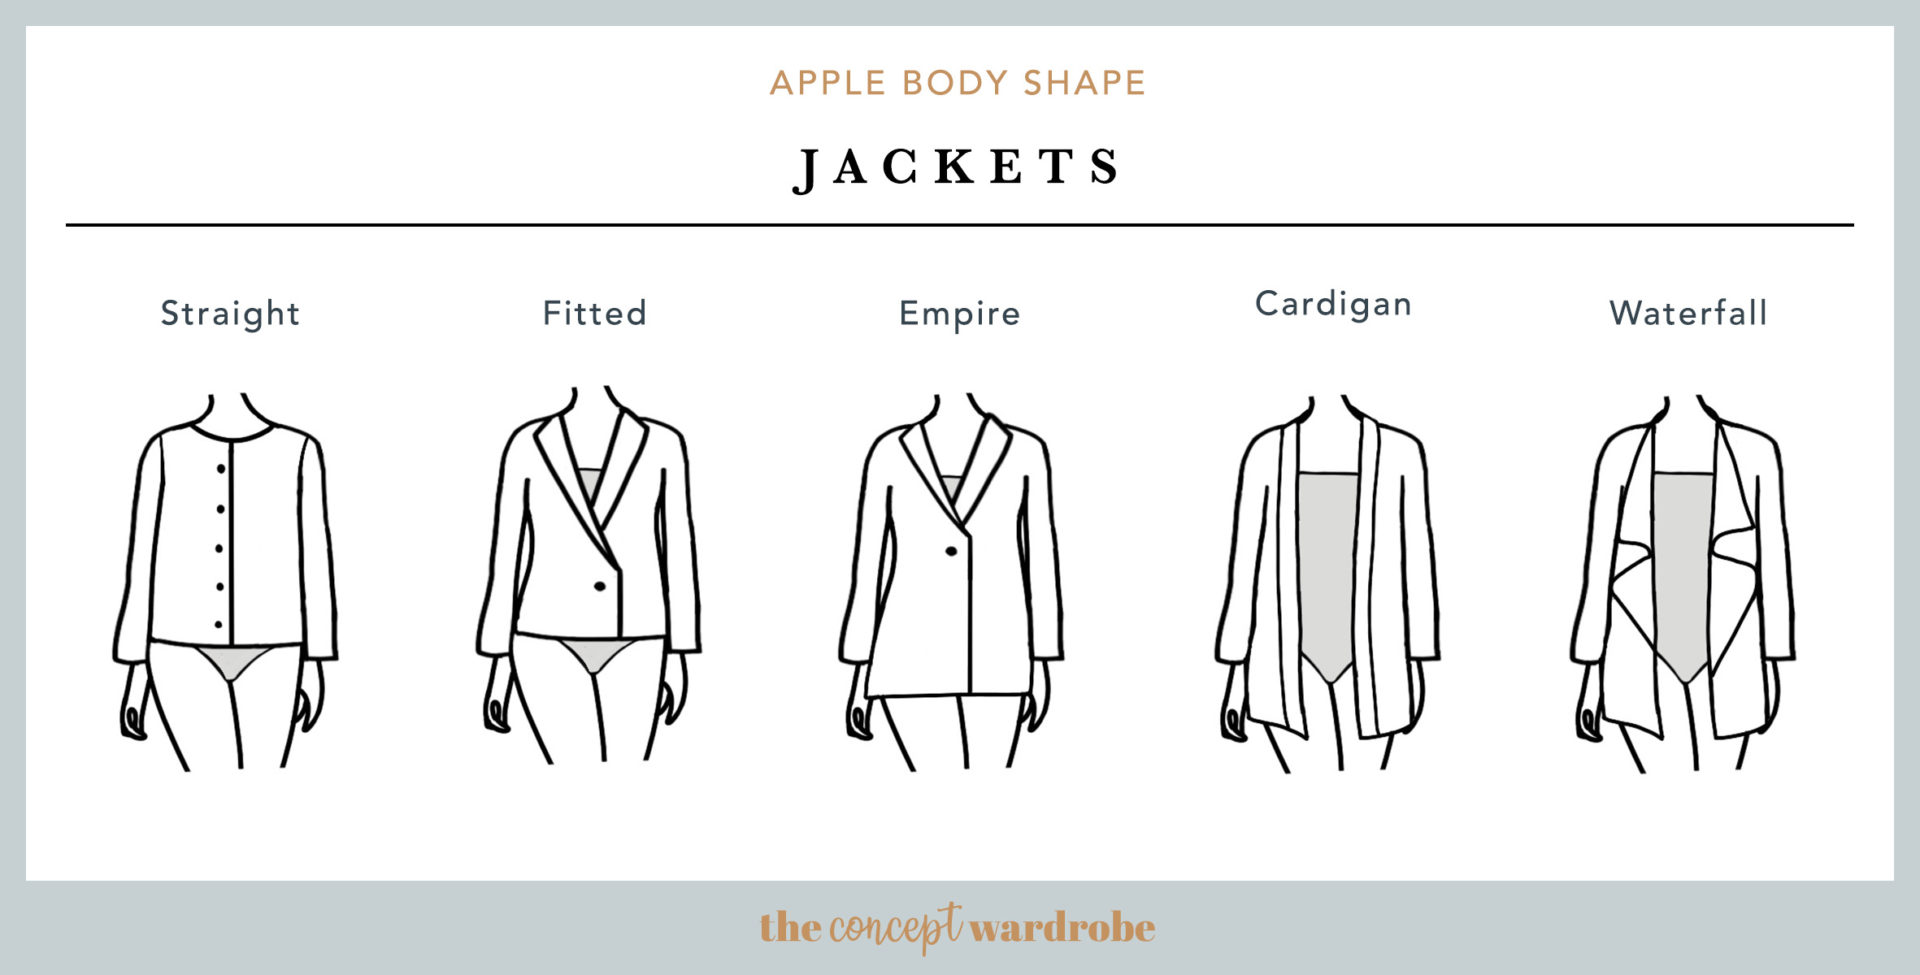 Apple Body Shape Jackets - the concept wardrobe